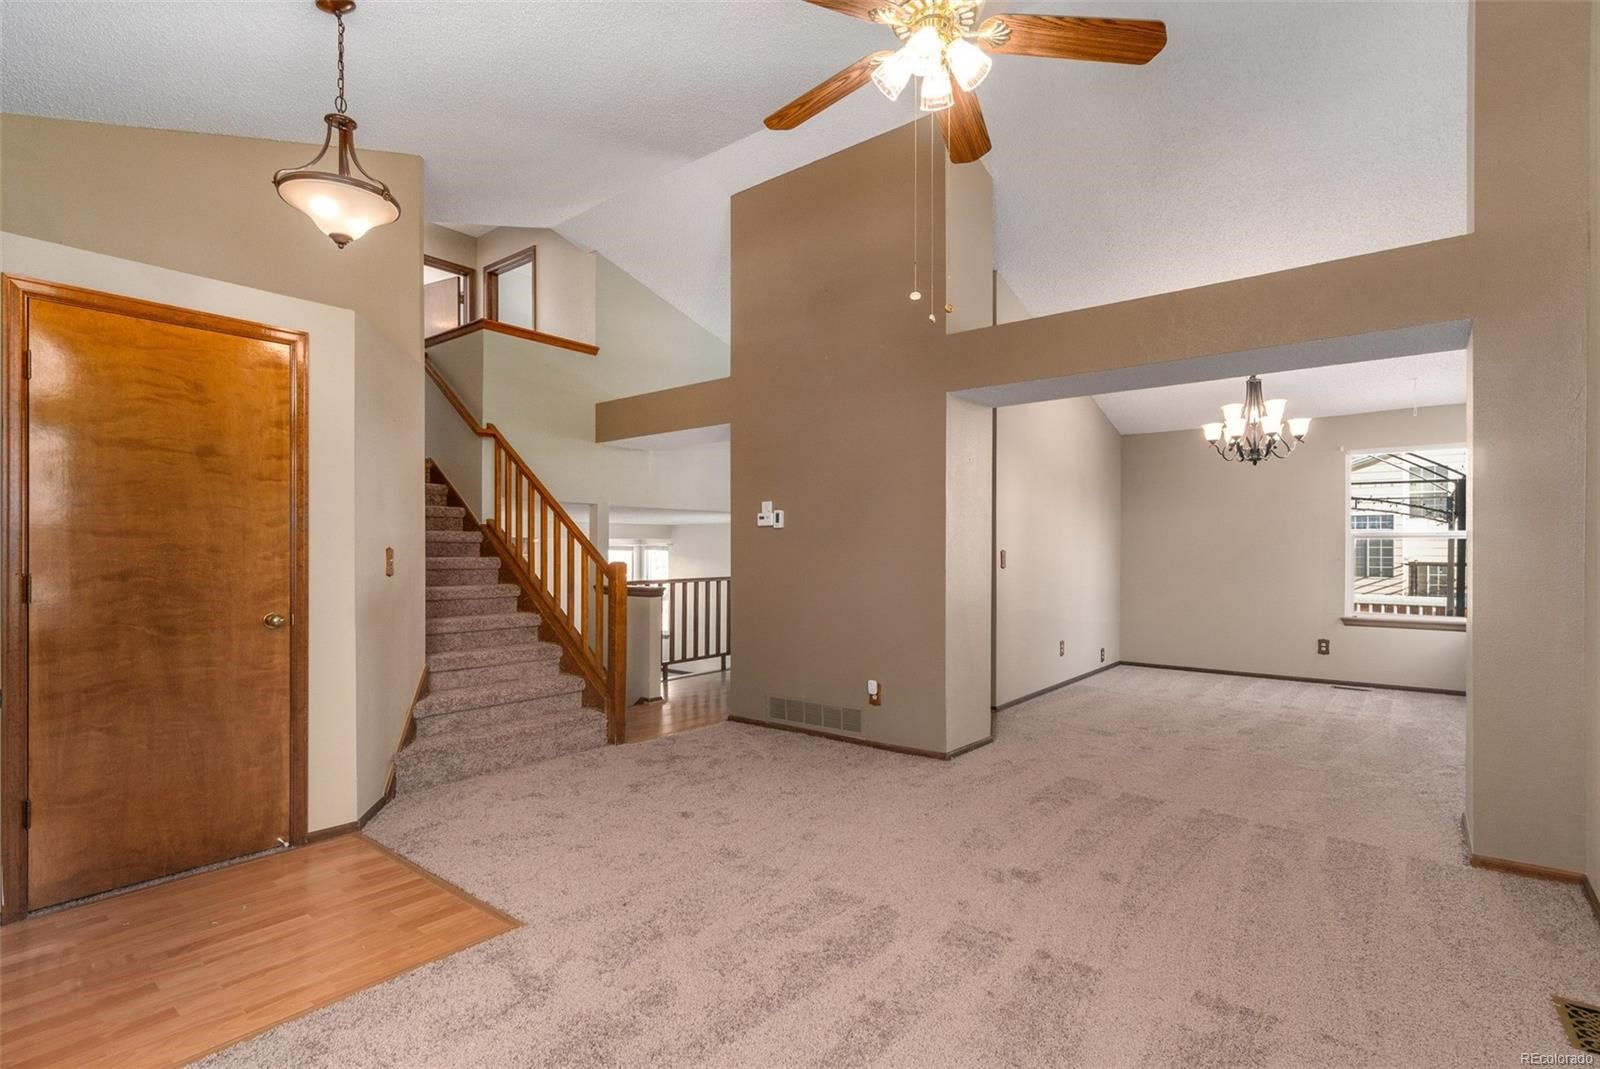 MLS# 4661252 - 3 - 4666 N Wildflowers Way, Castle Rock, CO 80109